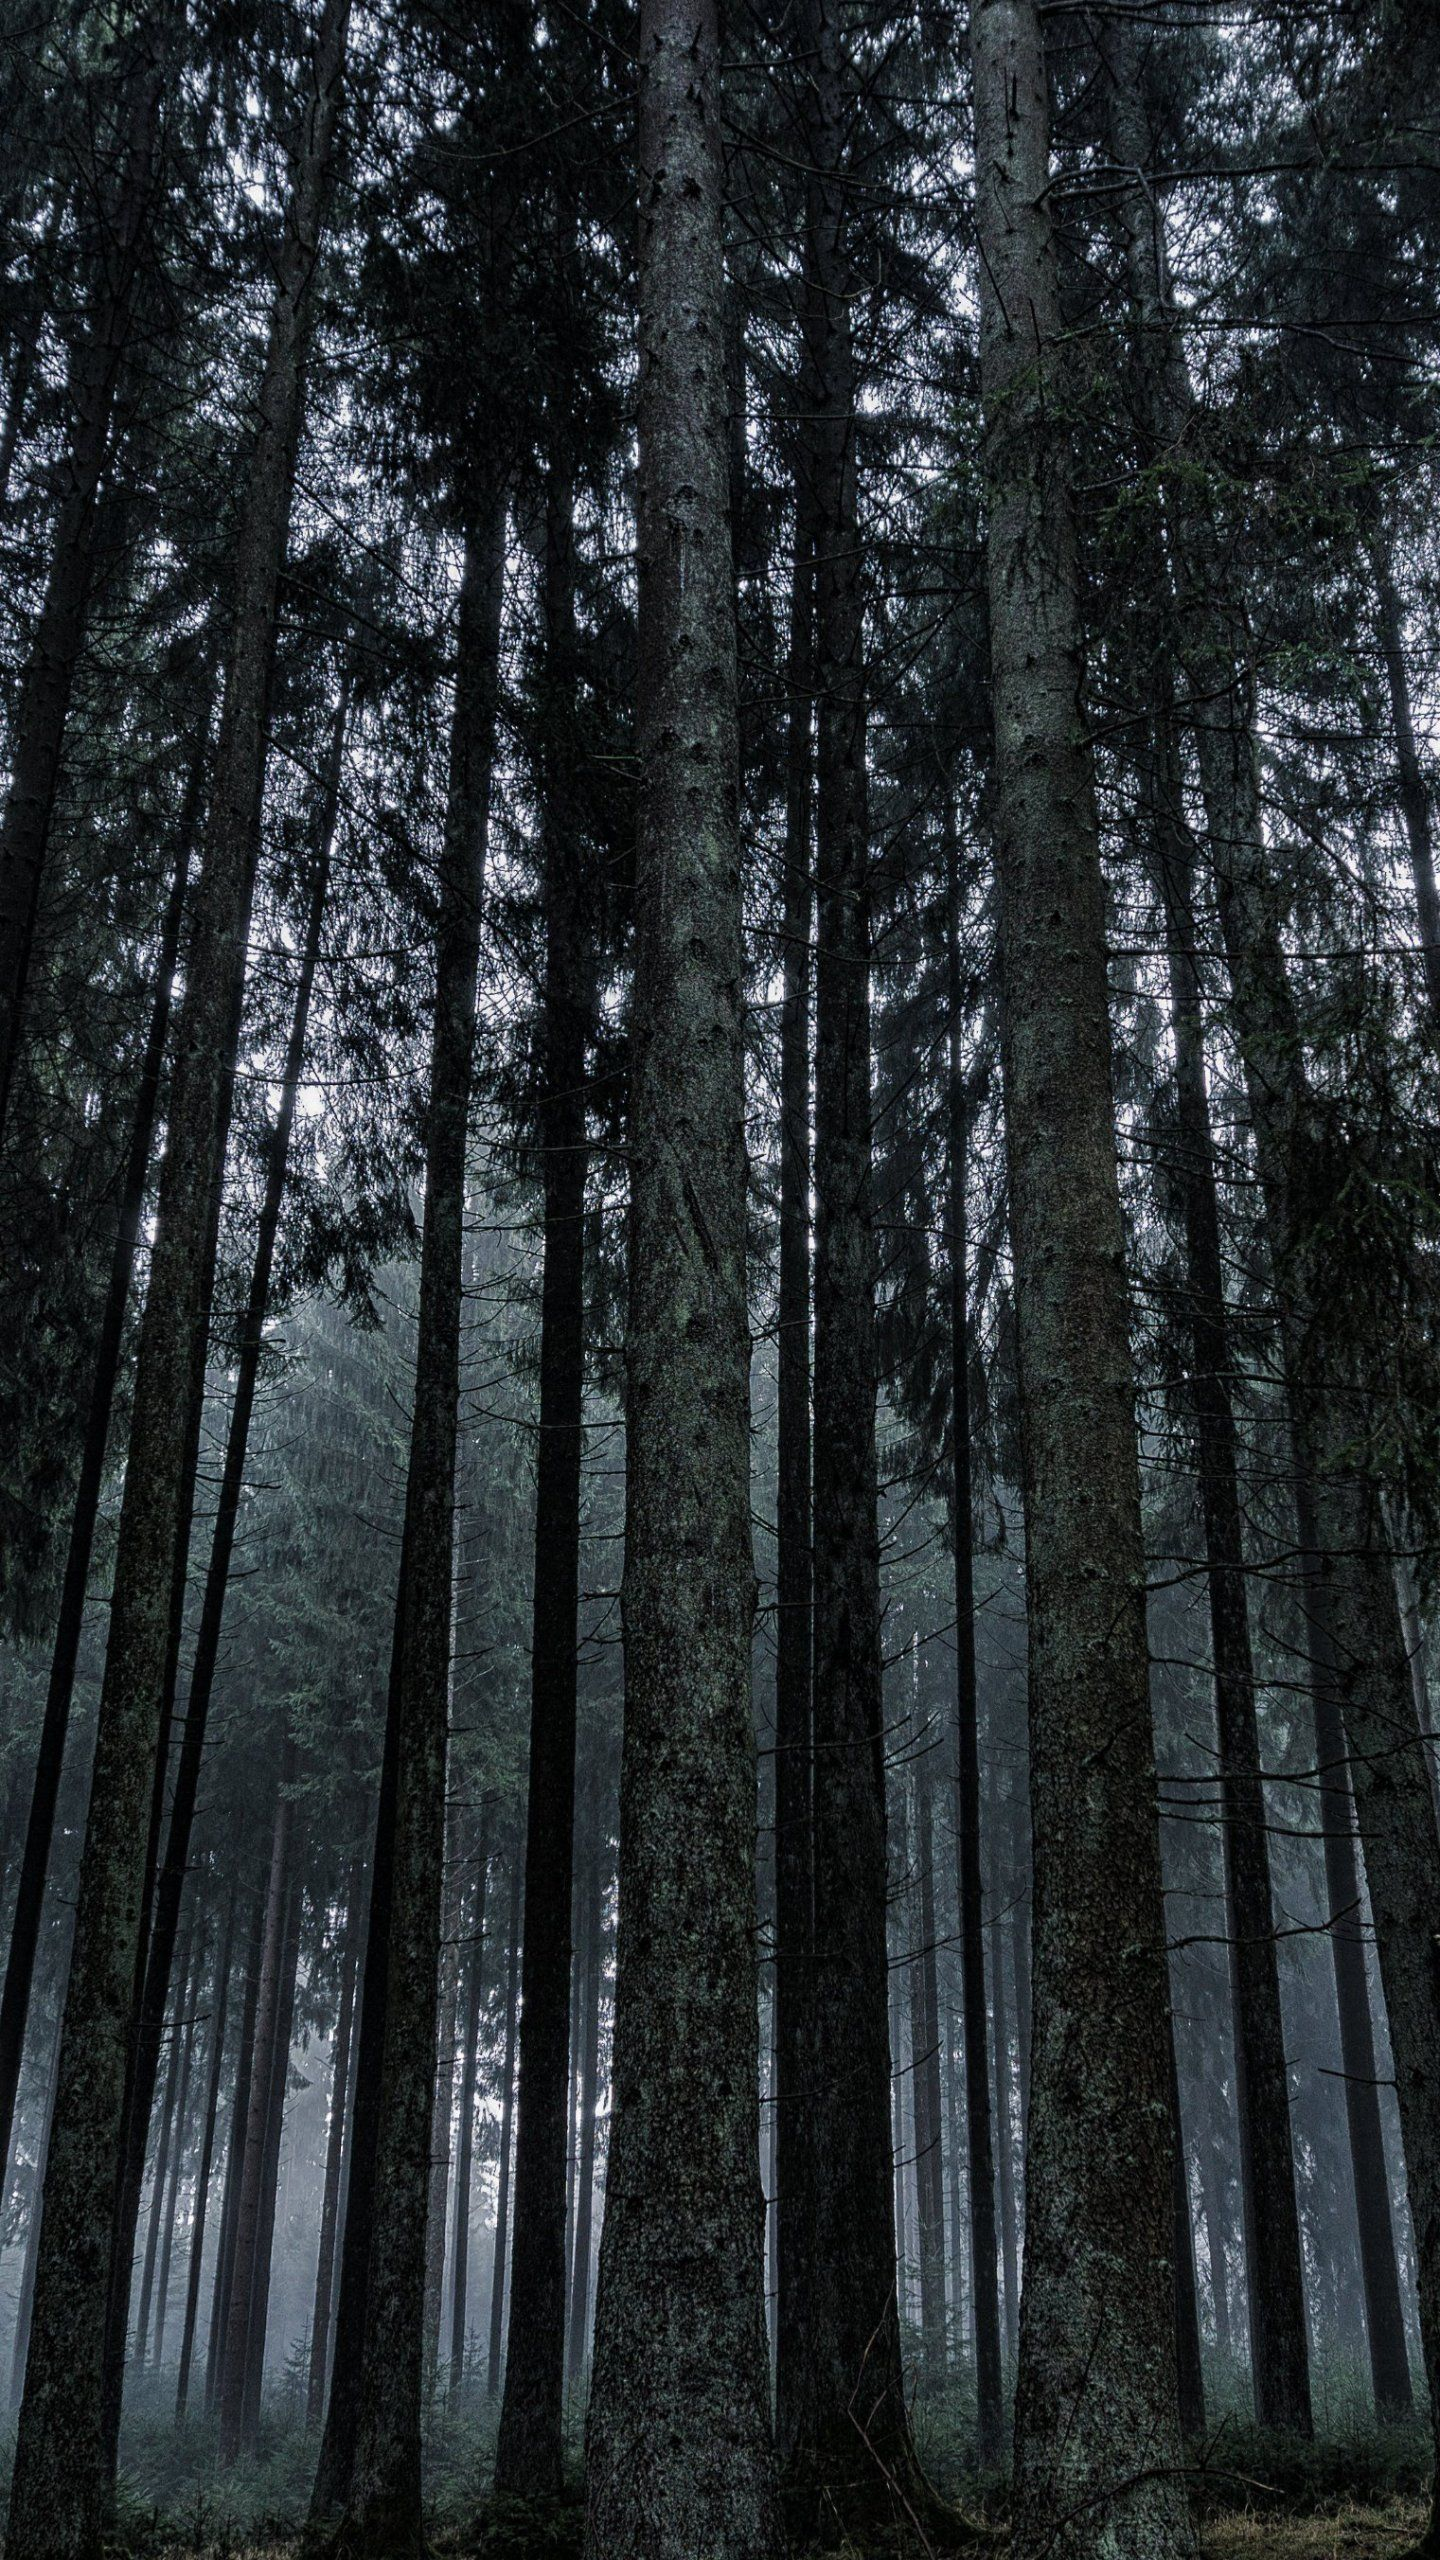 Dark Forest Wallpaper Iphone Android Desktop Backgrounds Forest Wallpaper Beautiful Scenery Pictures Dark Forest